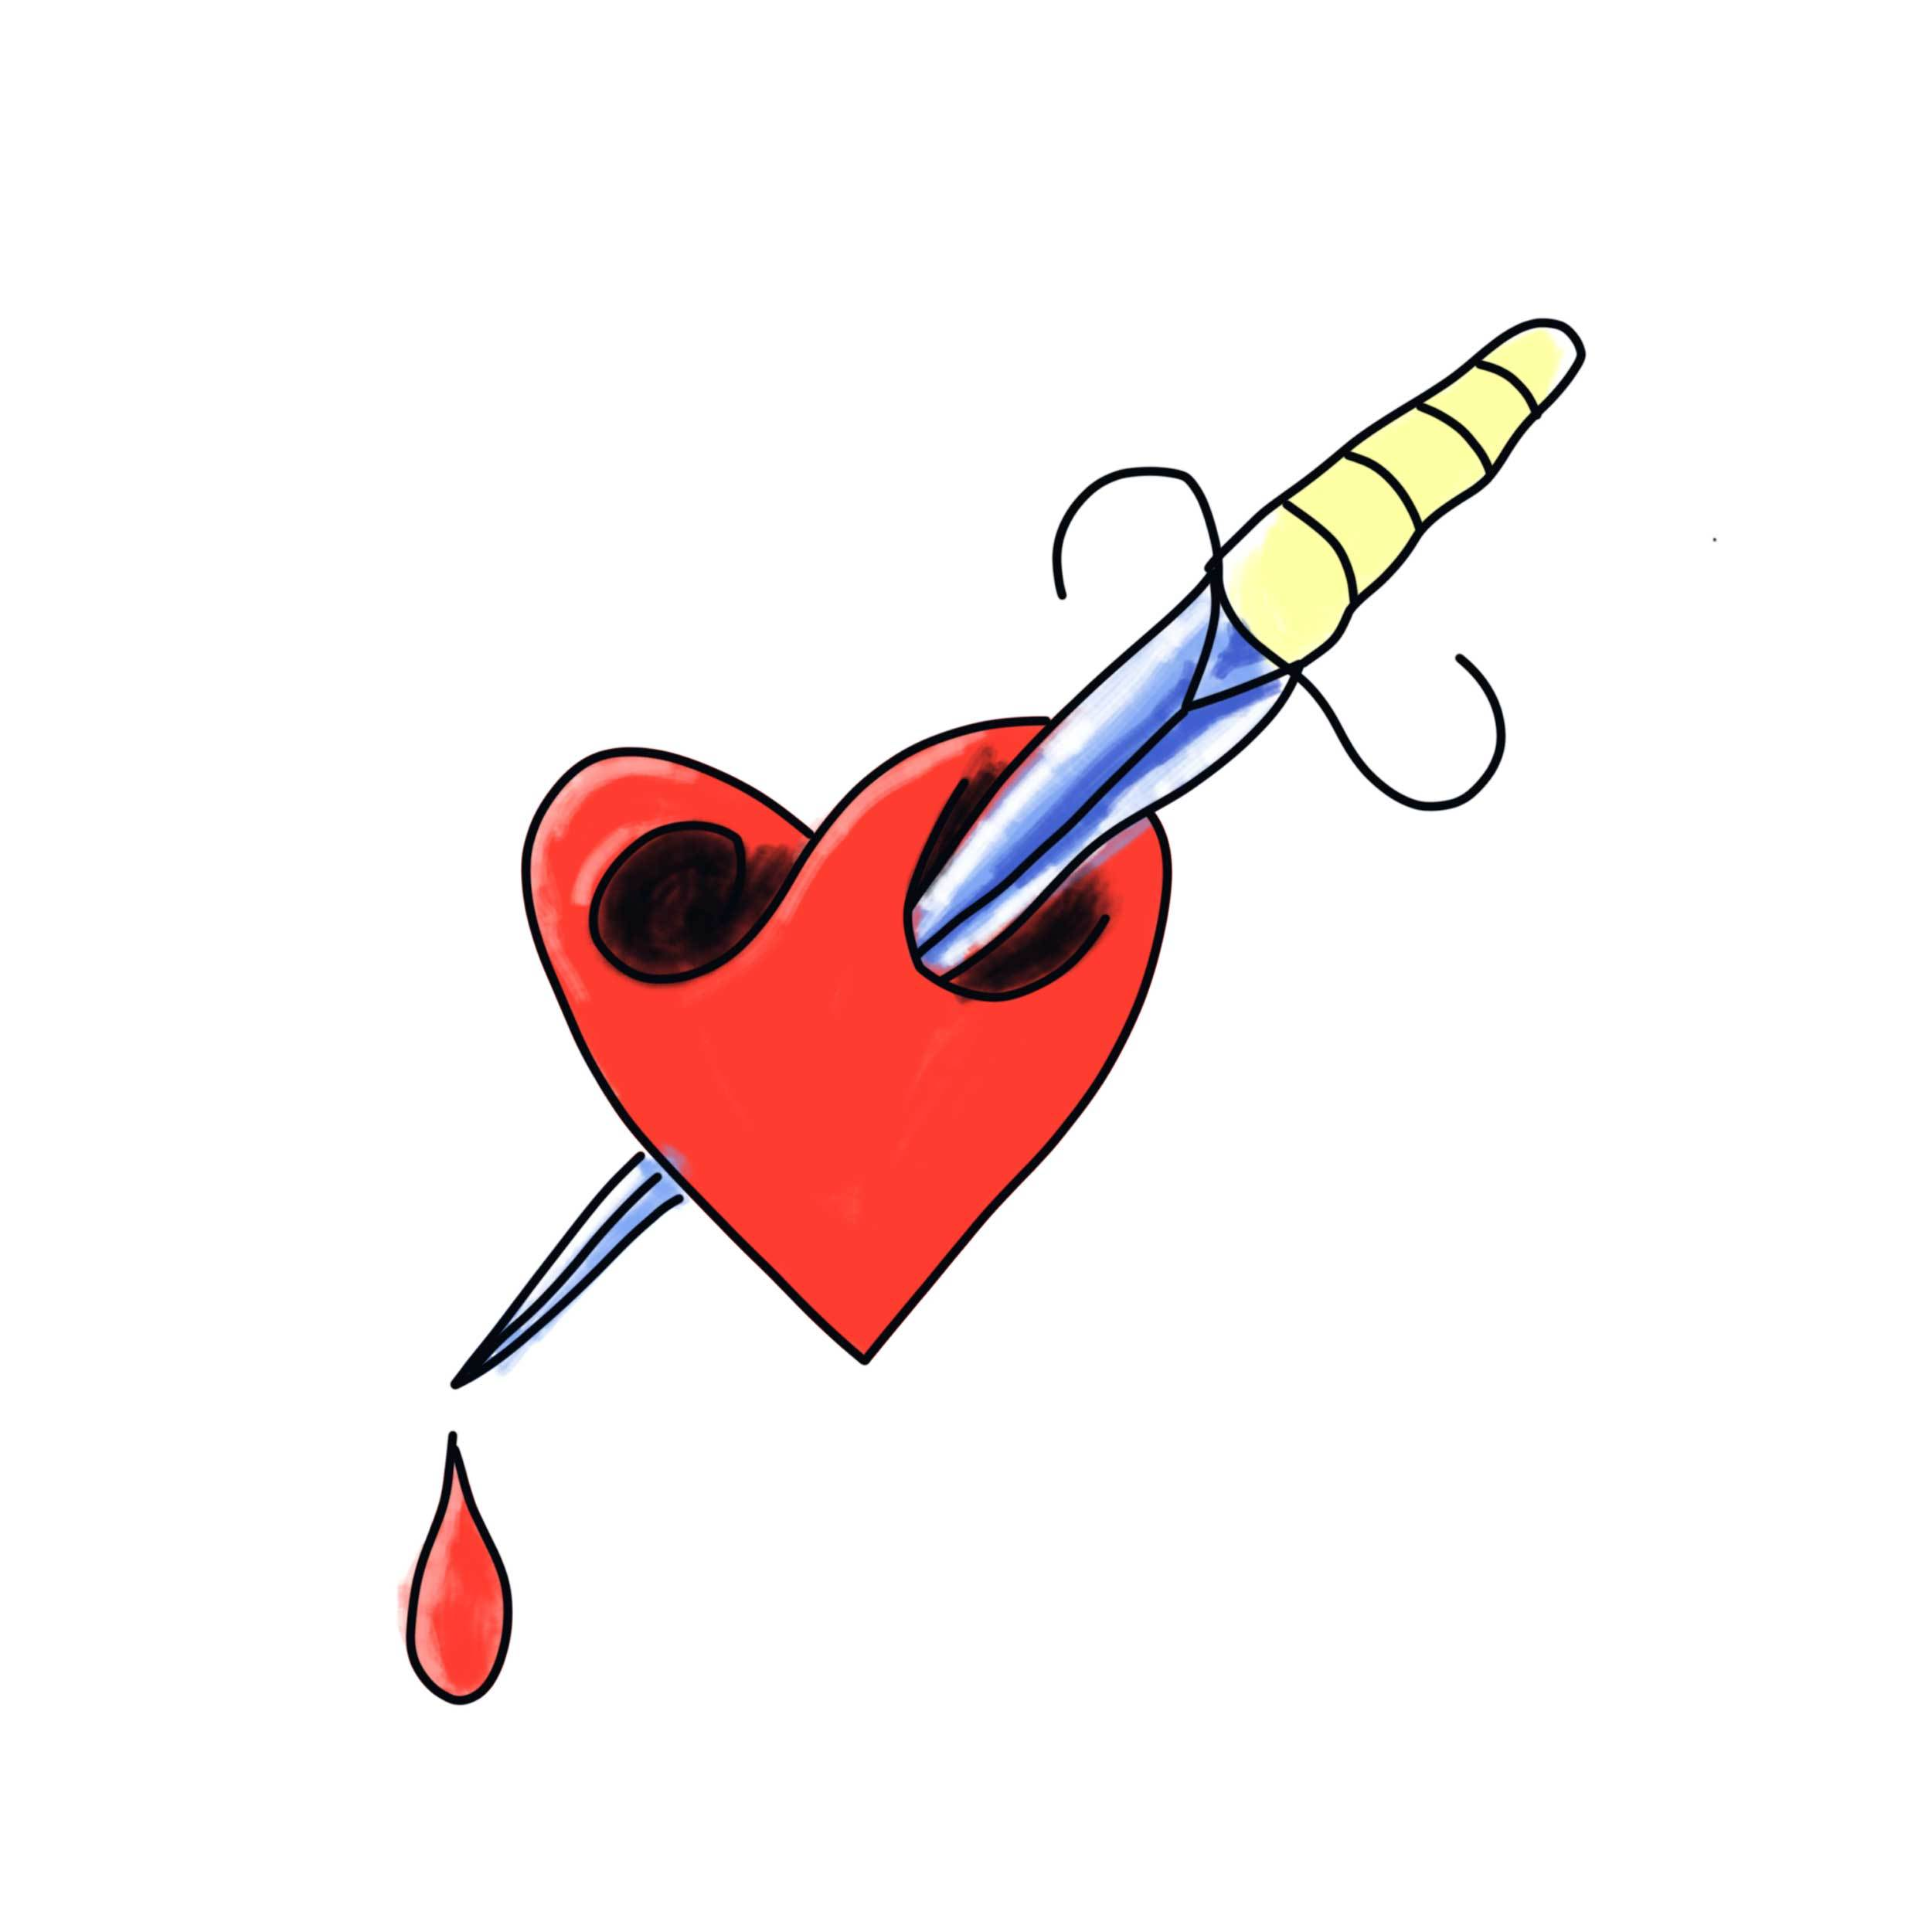 Stabbed Heart Temporary Tatoo Design. Tags: Traditional, Color, Abstract,